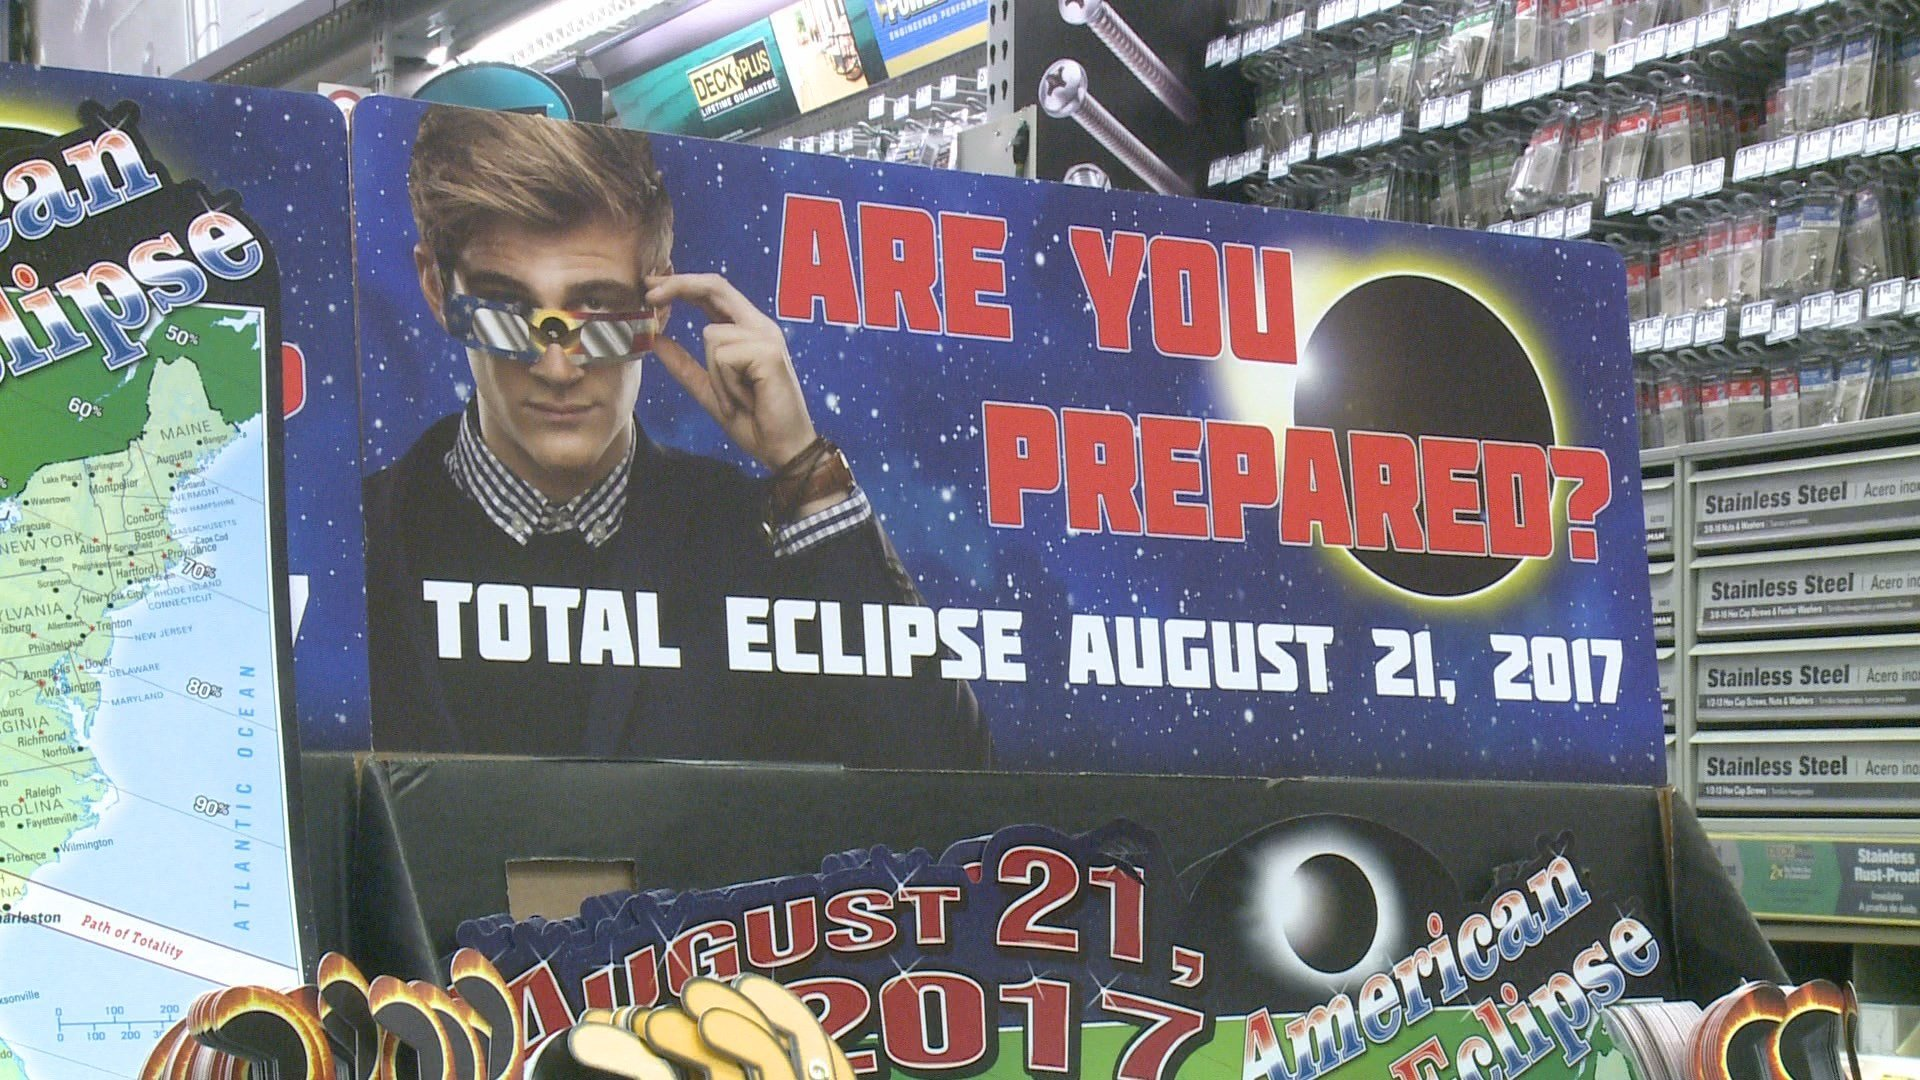 Solar eclipse to appear in August